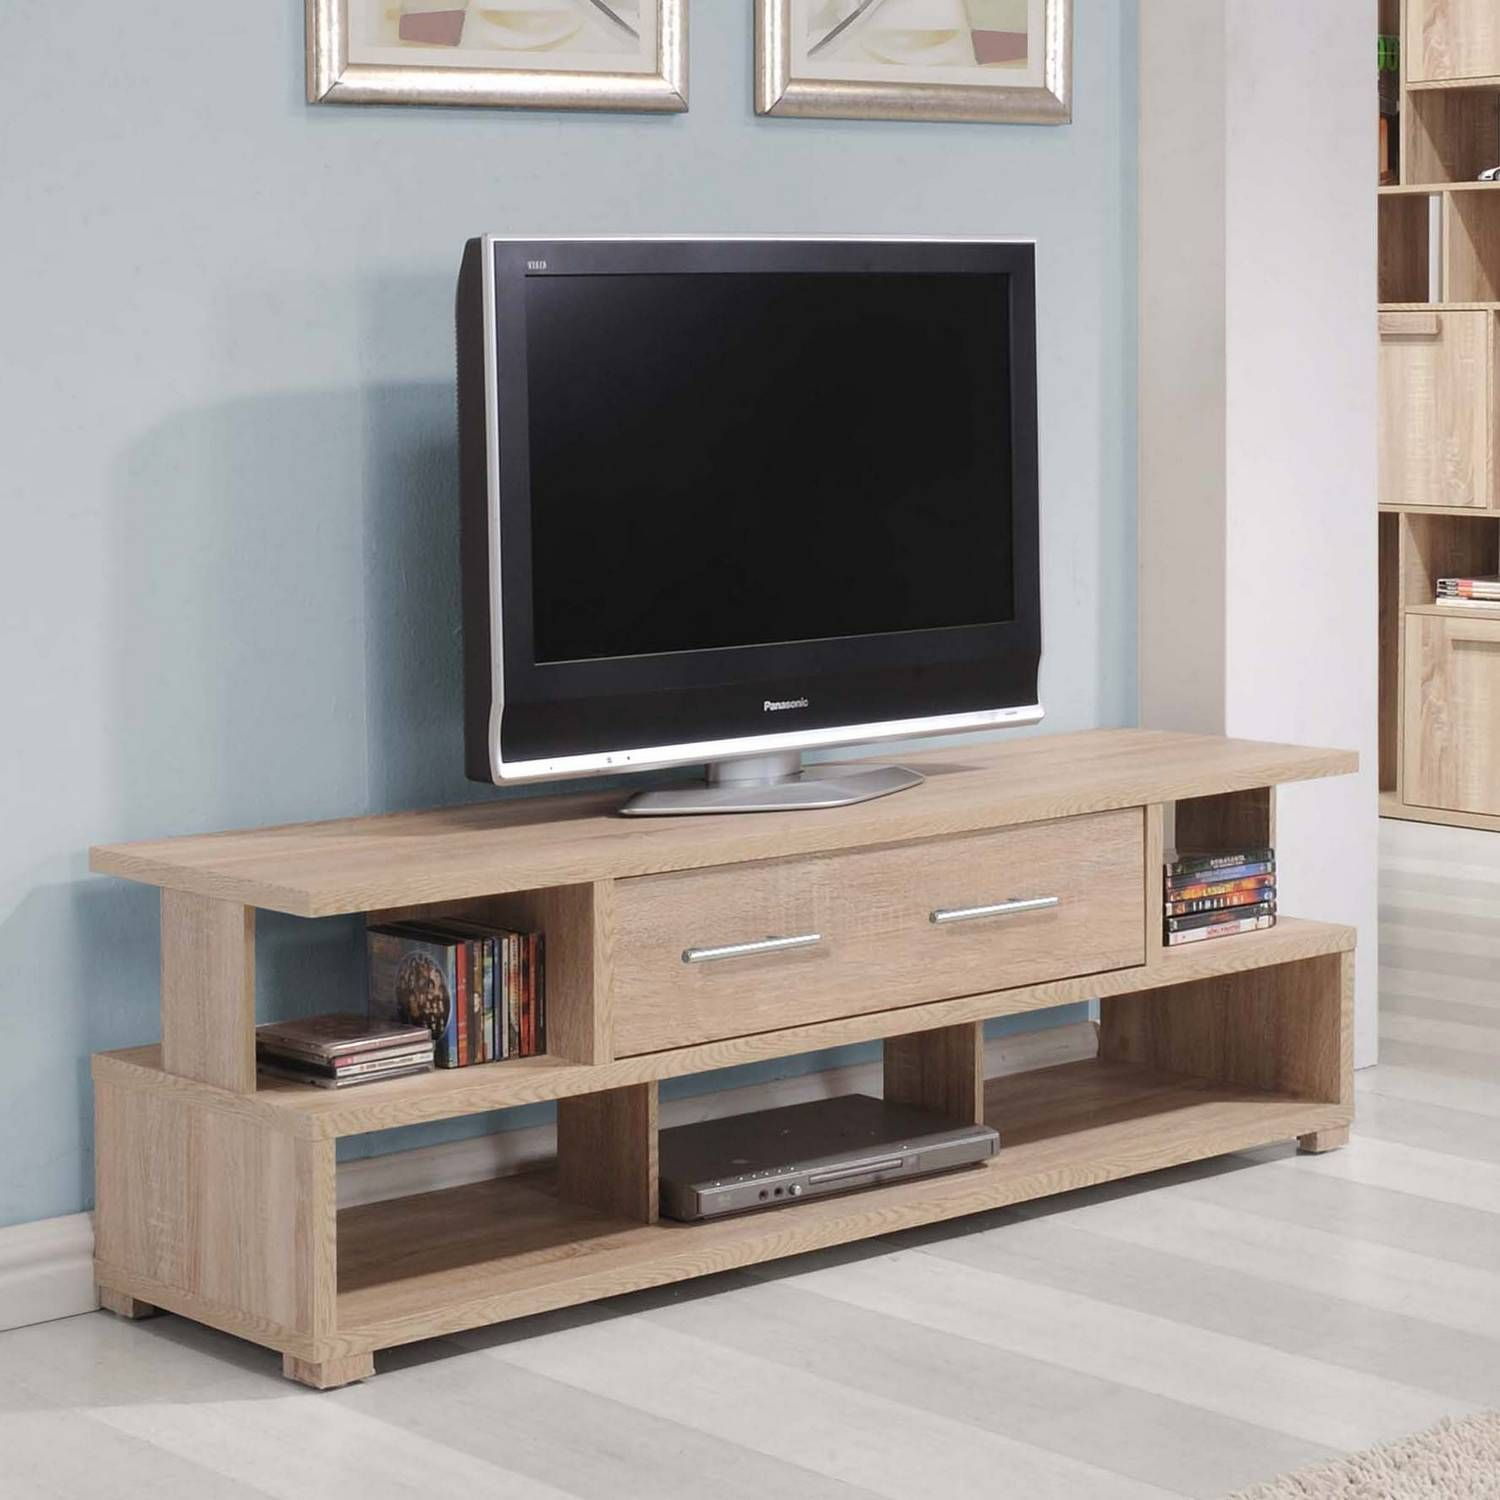 Apollo Tv Unit Furniture The Range Gimbel Office Pinterest Tv Unit Living Room And Room